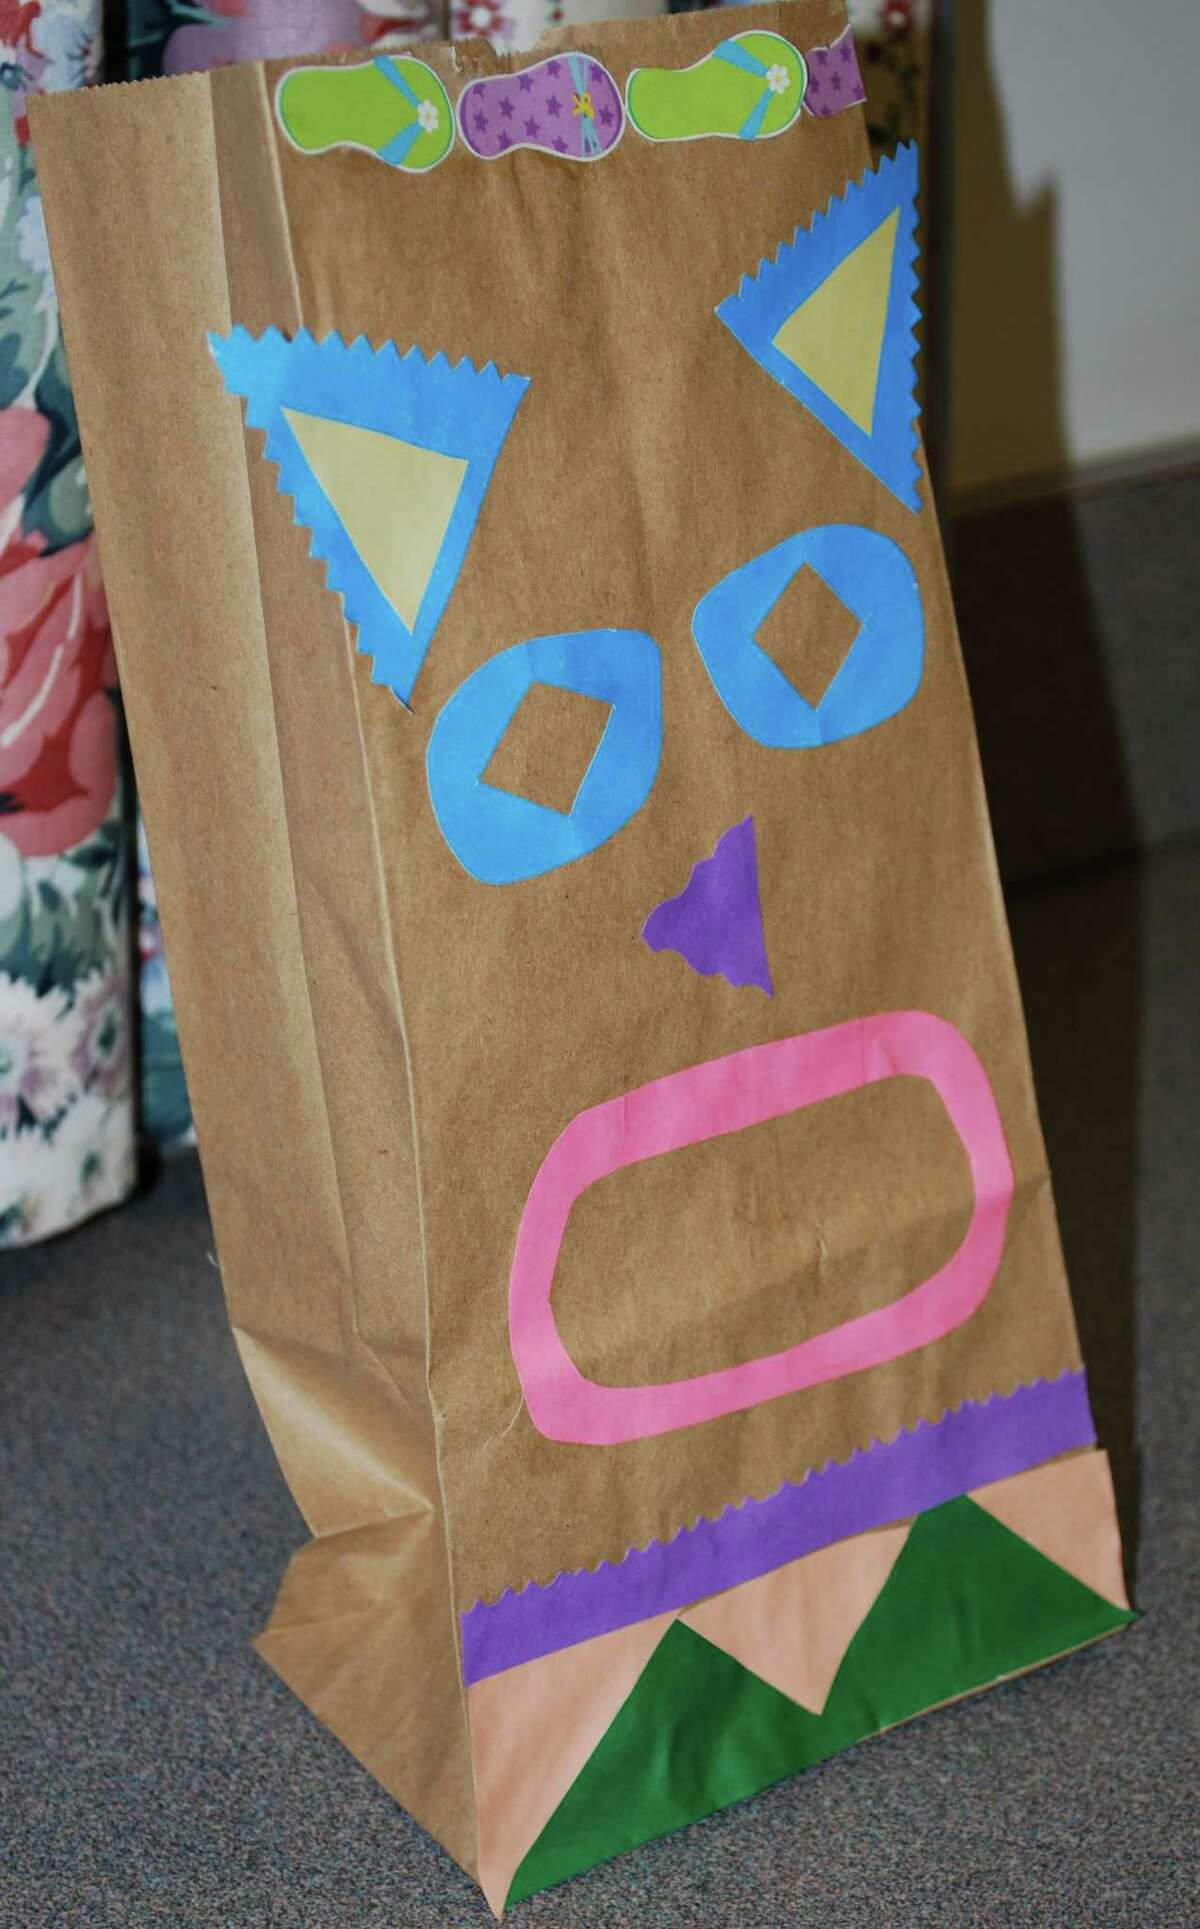 Spectrum/Colorful paper bags decorated for the occasion add a festive spirit to the First Congregational Church's Vacation Bible School program's Jan. 30, 2016, one-night luau-inspired event in New Milford.